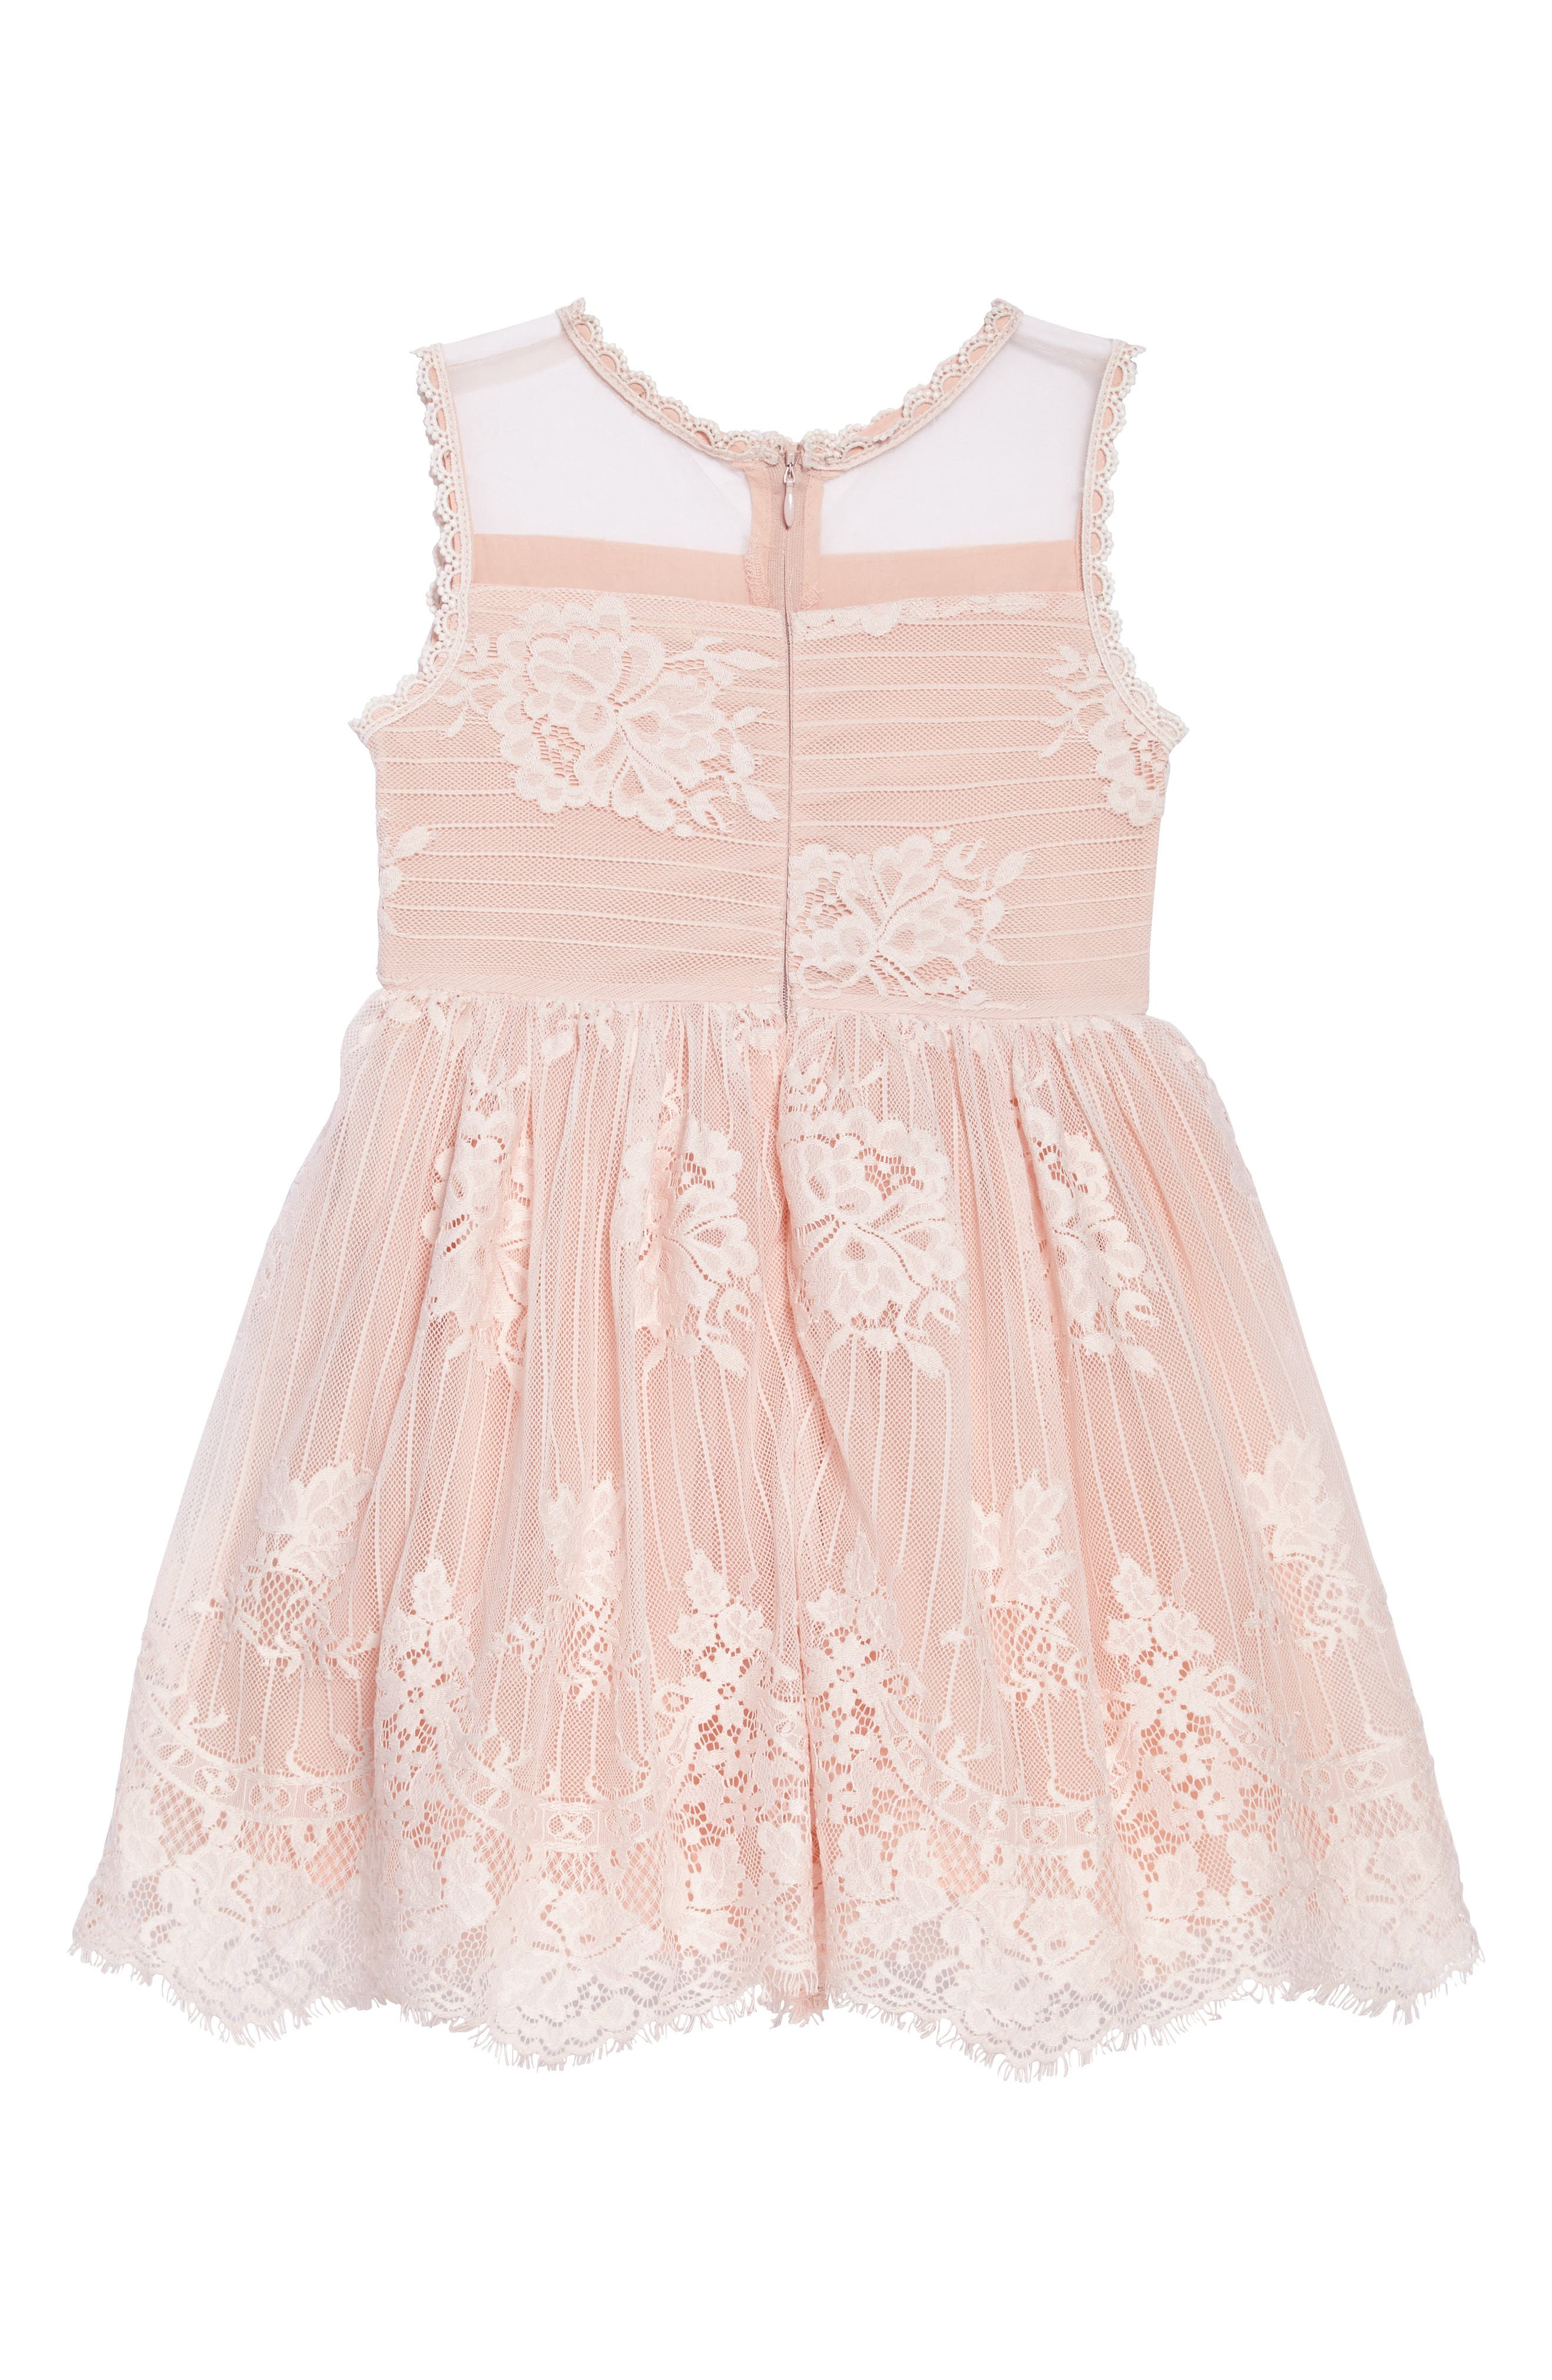 Lace Fit & Flare Dress,                             Alternate thumbnail 2, color,                             Pink